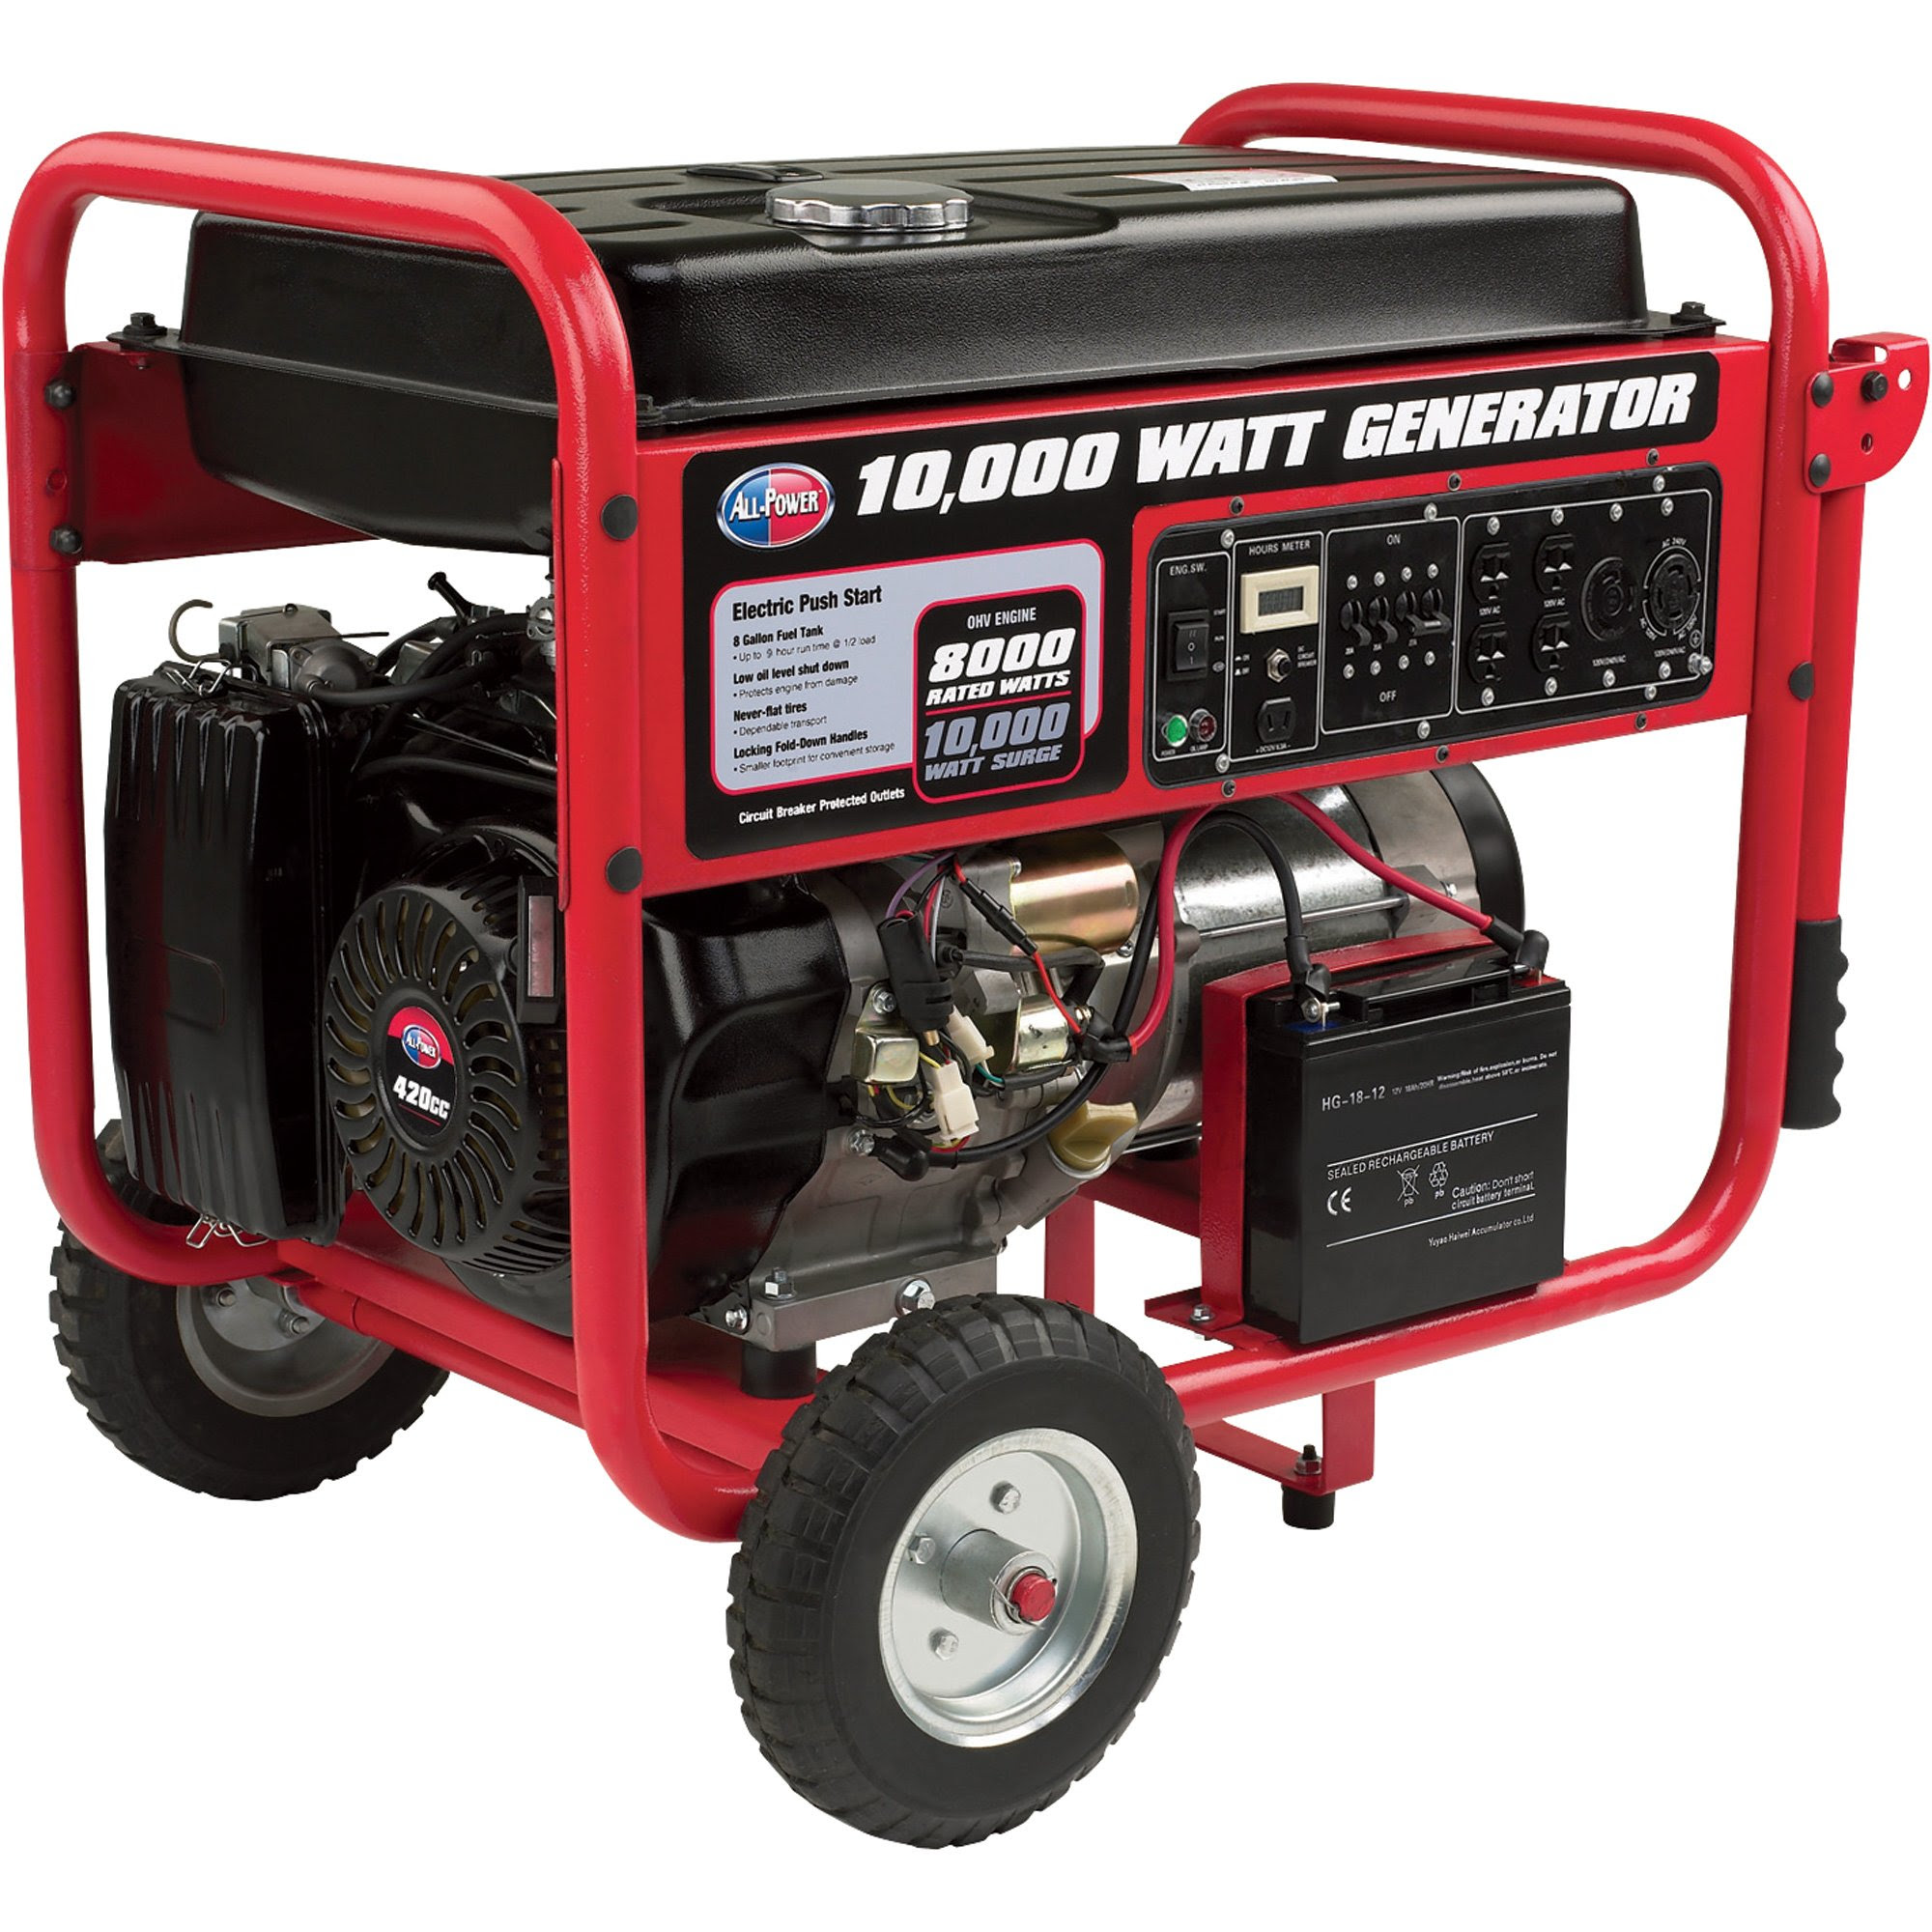 Product: All Power Portable Generator — 10,000 Watt, Electric Start, Model APGG1000